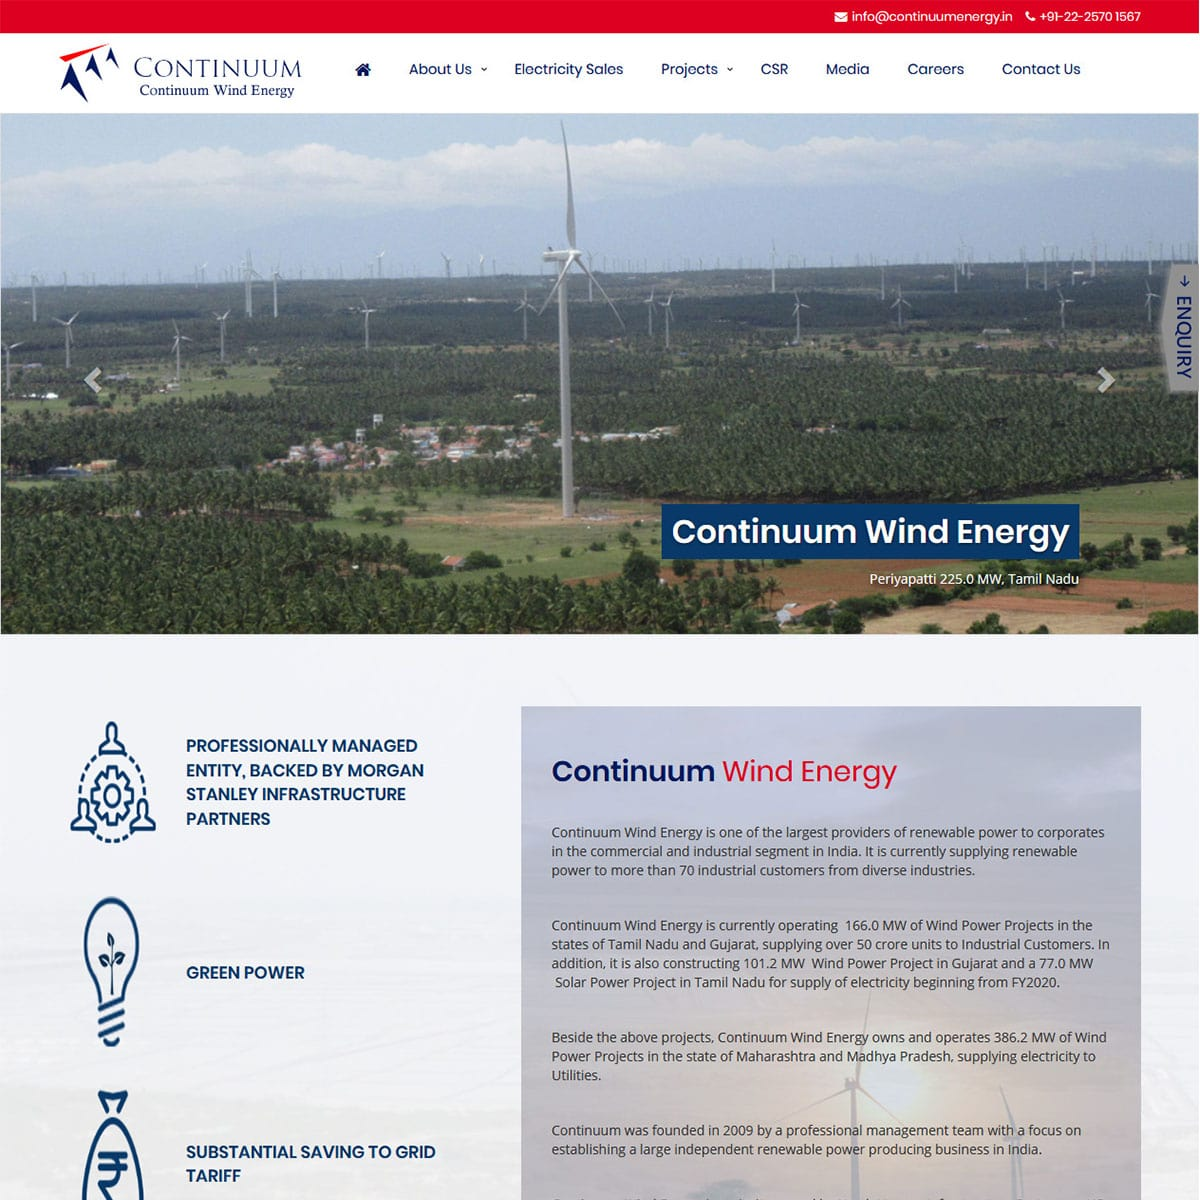 Continuum Wind Energy